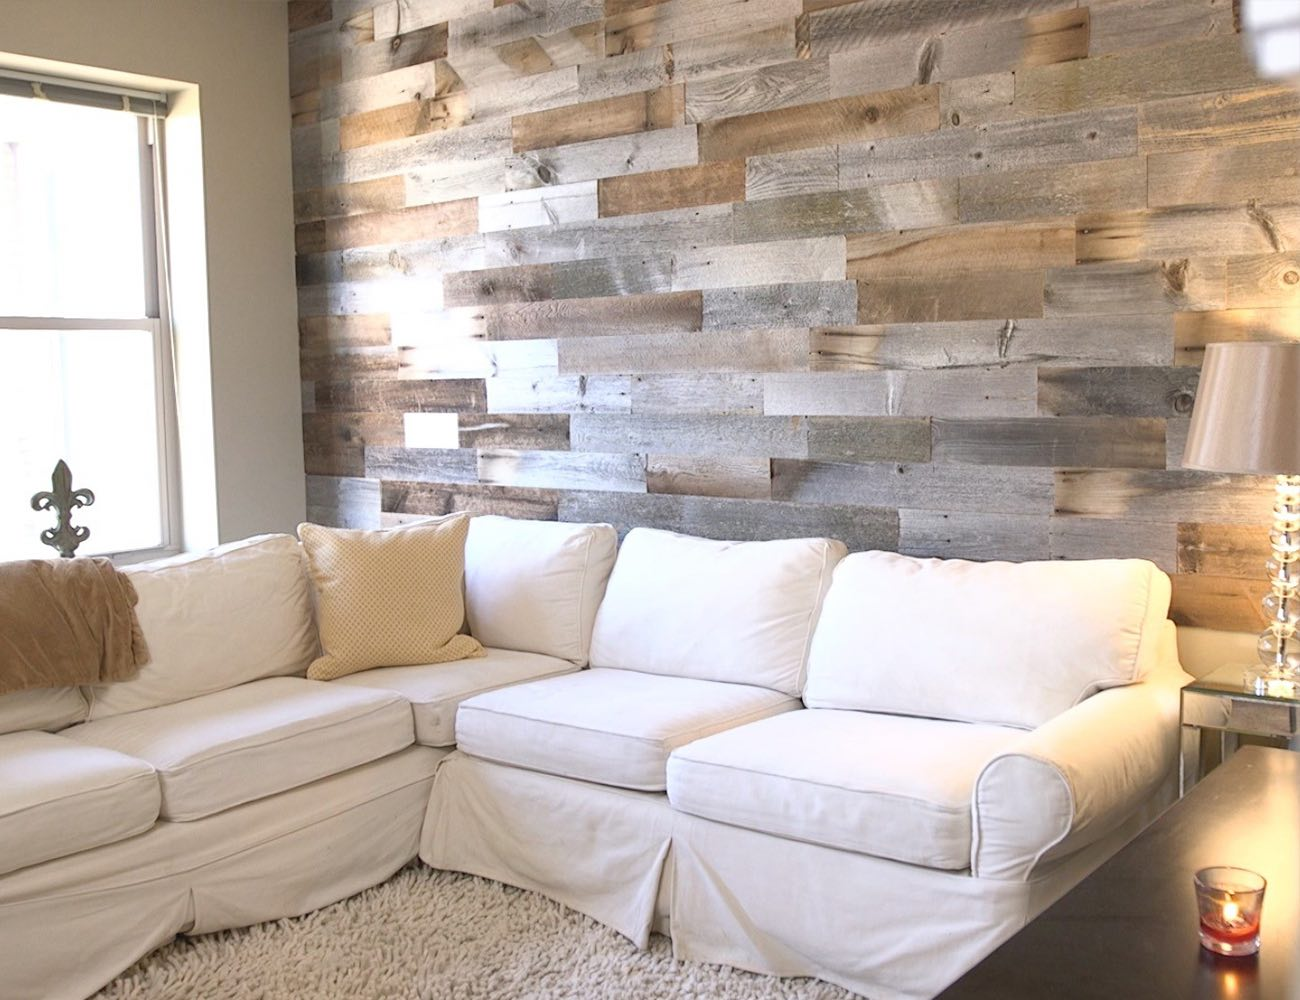 artis-wall-revolutionary-wall-covering-product-02